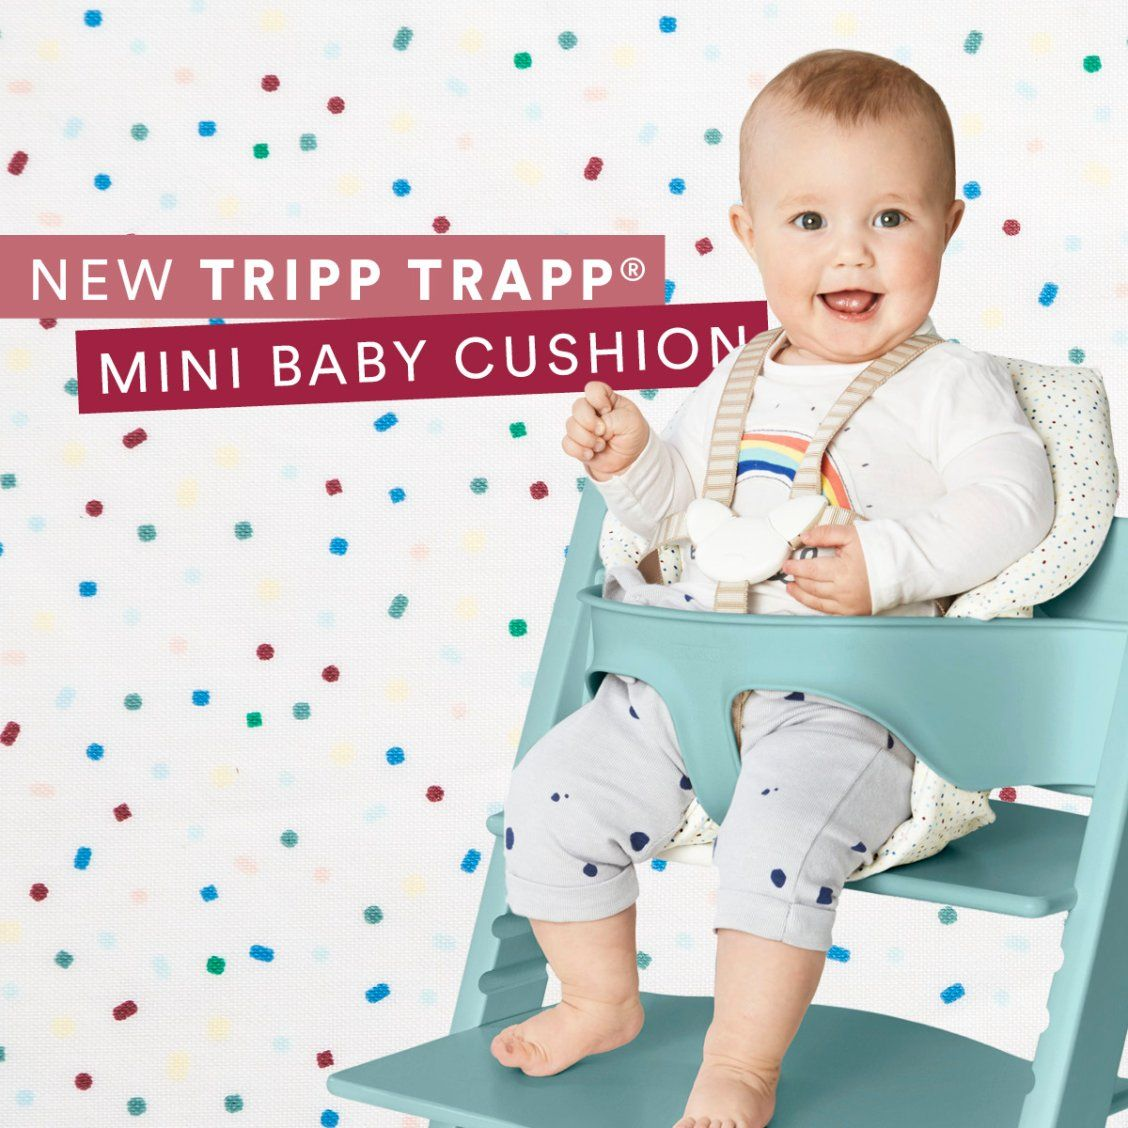 Tripp Trapp Mini Baby Cushion Soft Sprinkle Designed To Be Closer